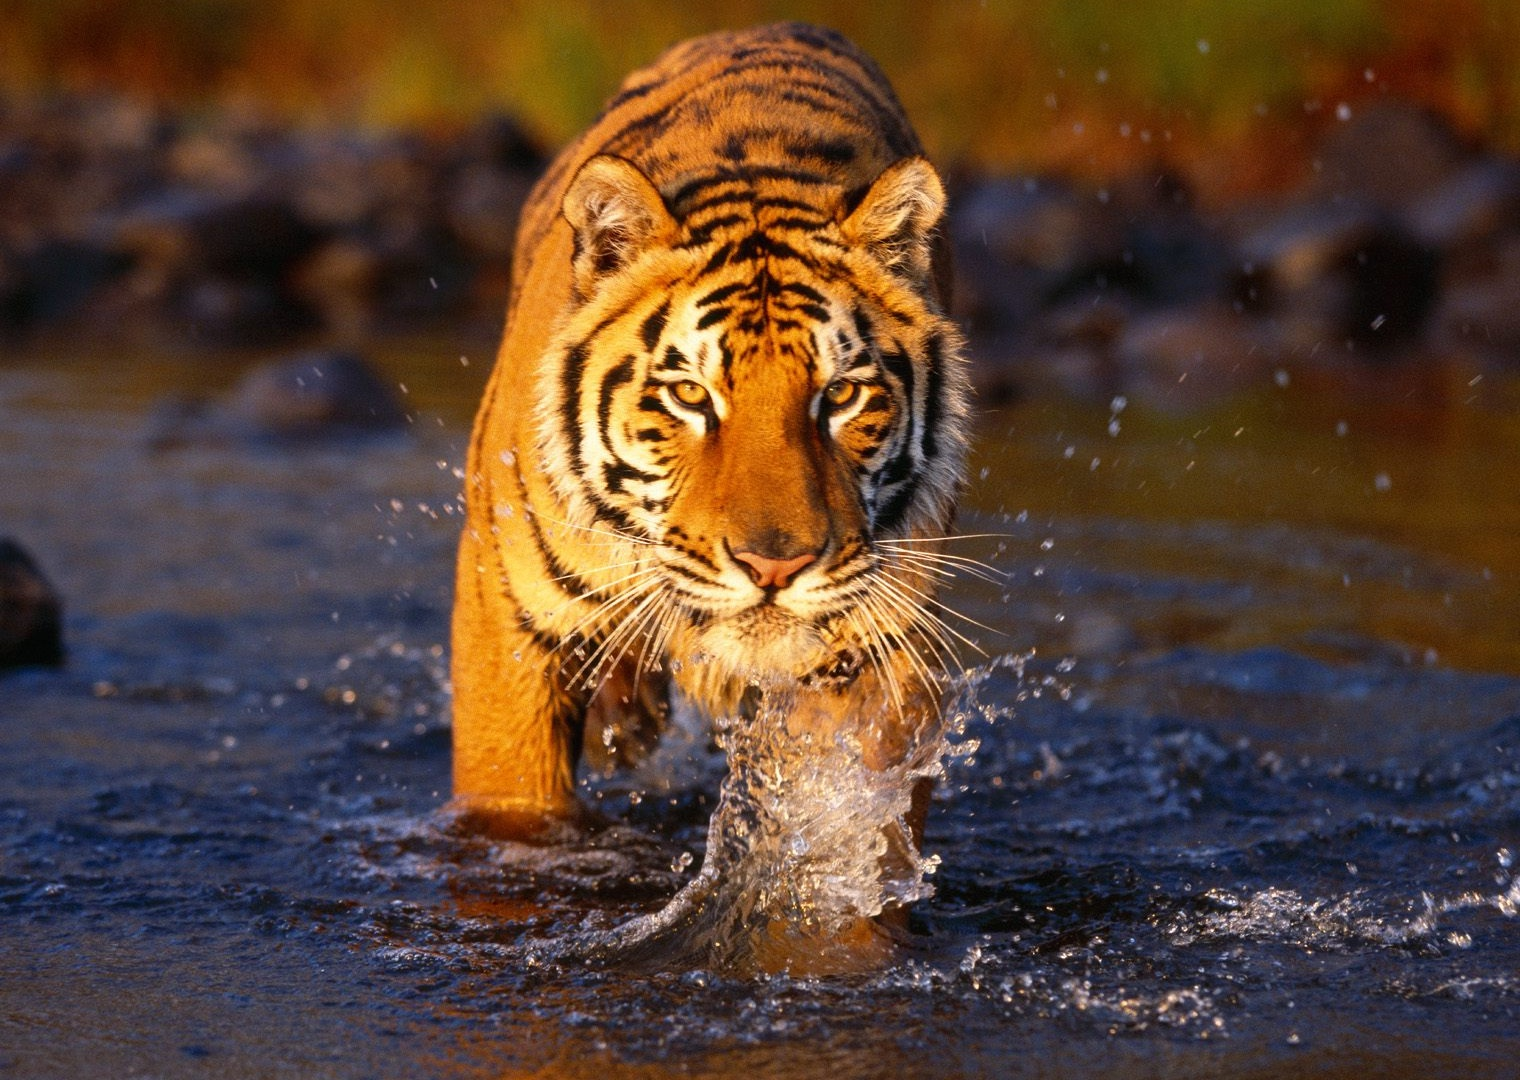 tiger-wallpapers-desktop-HD-photo-images-9.jpg